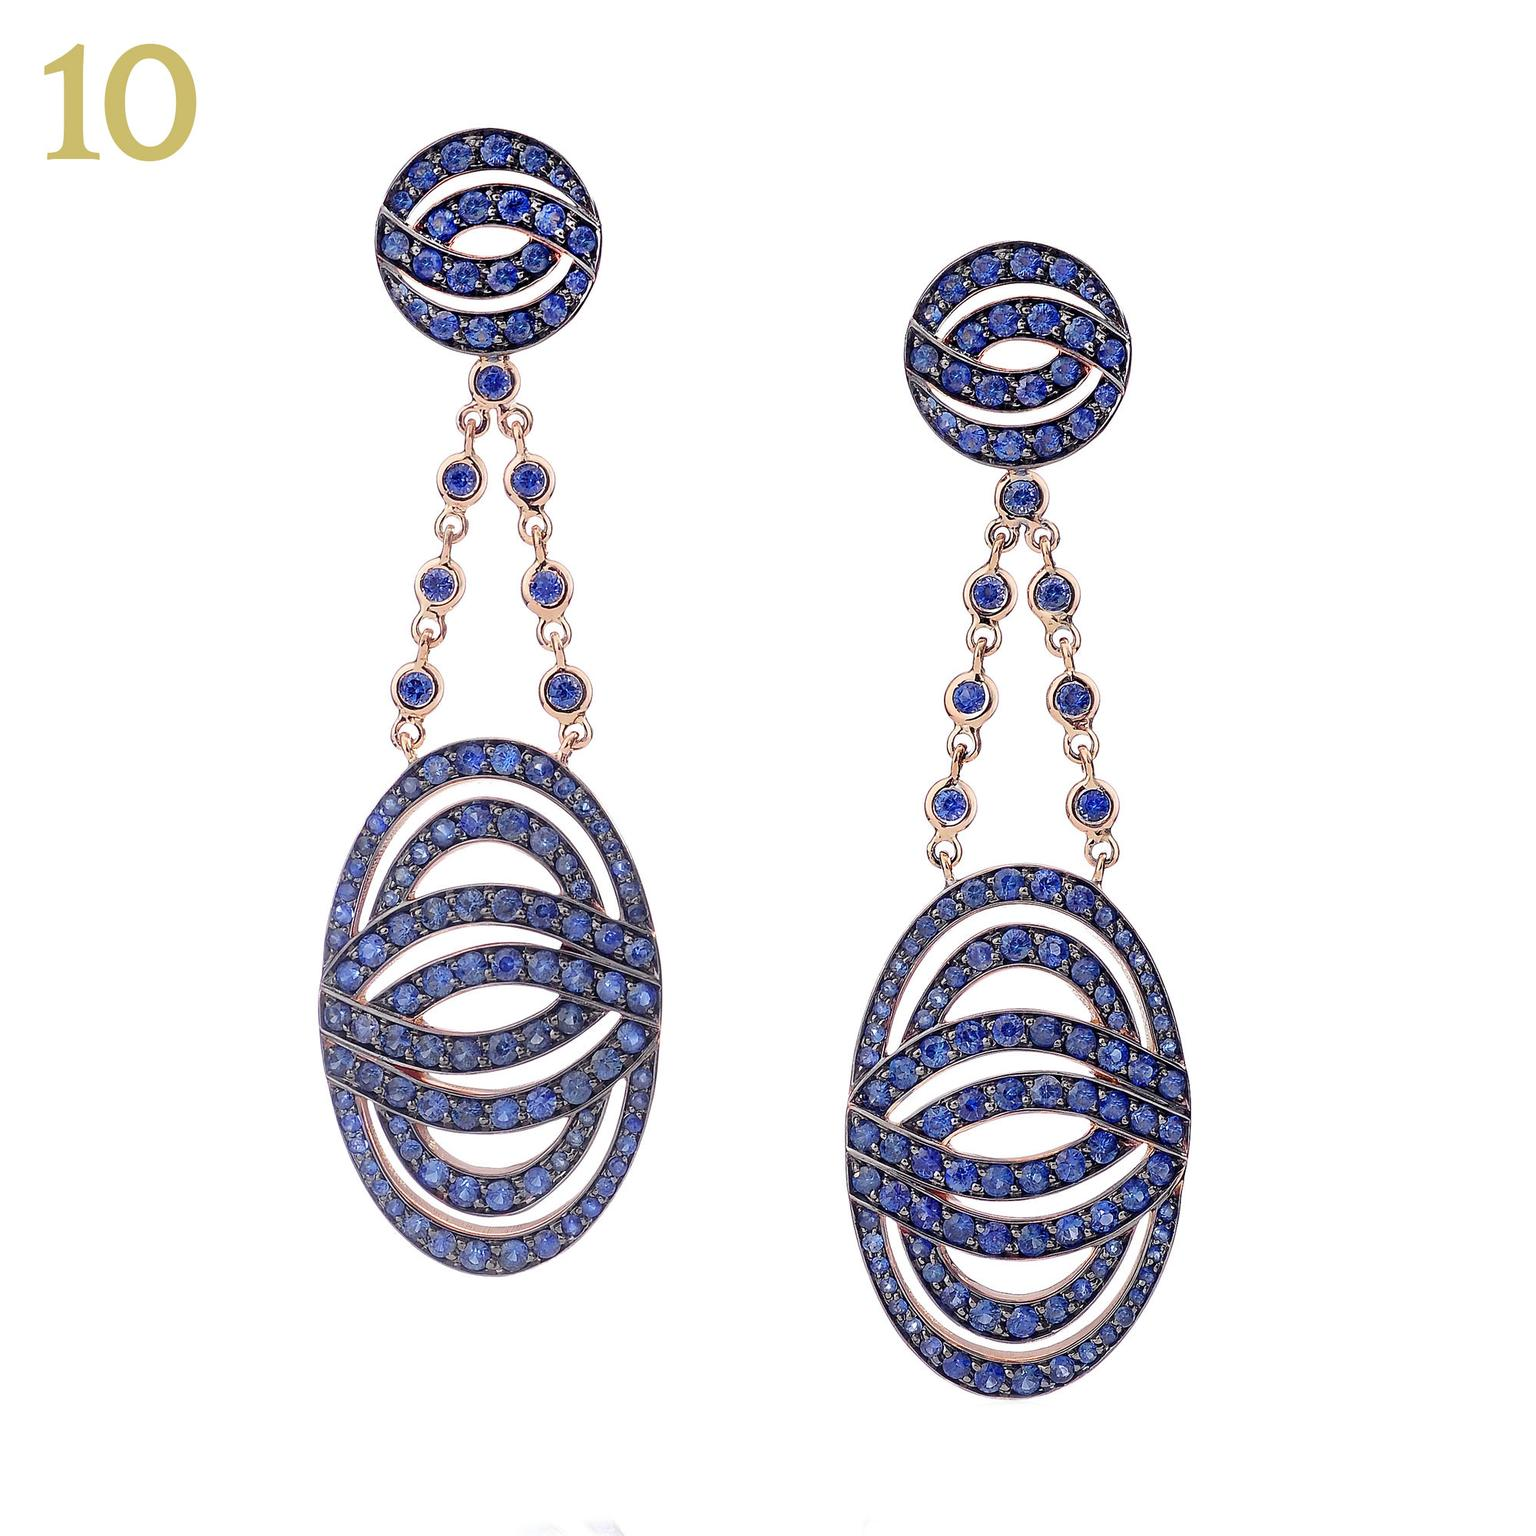 Lily Gabriella blue sapphire Infinitas earrings